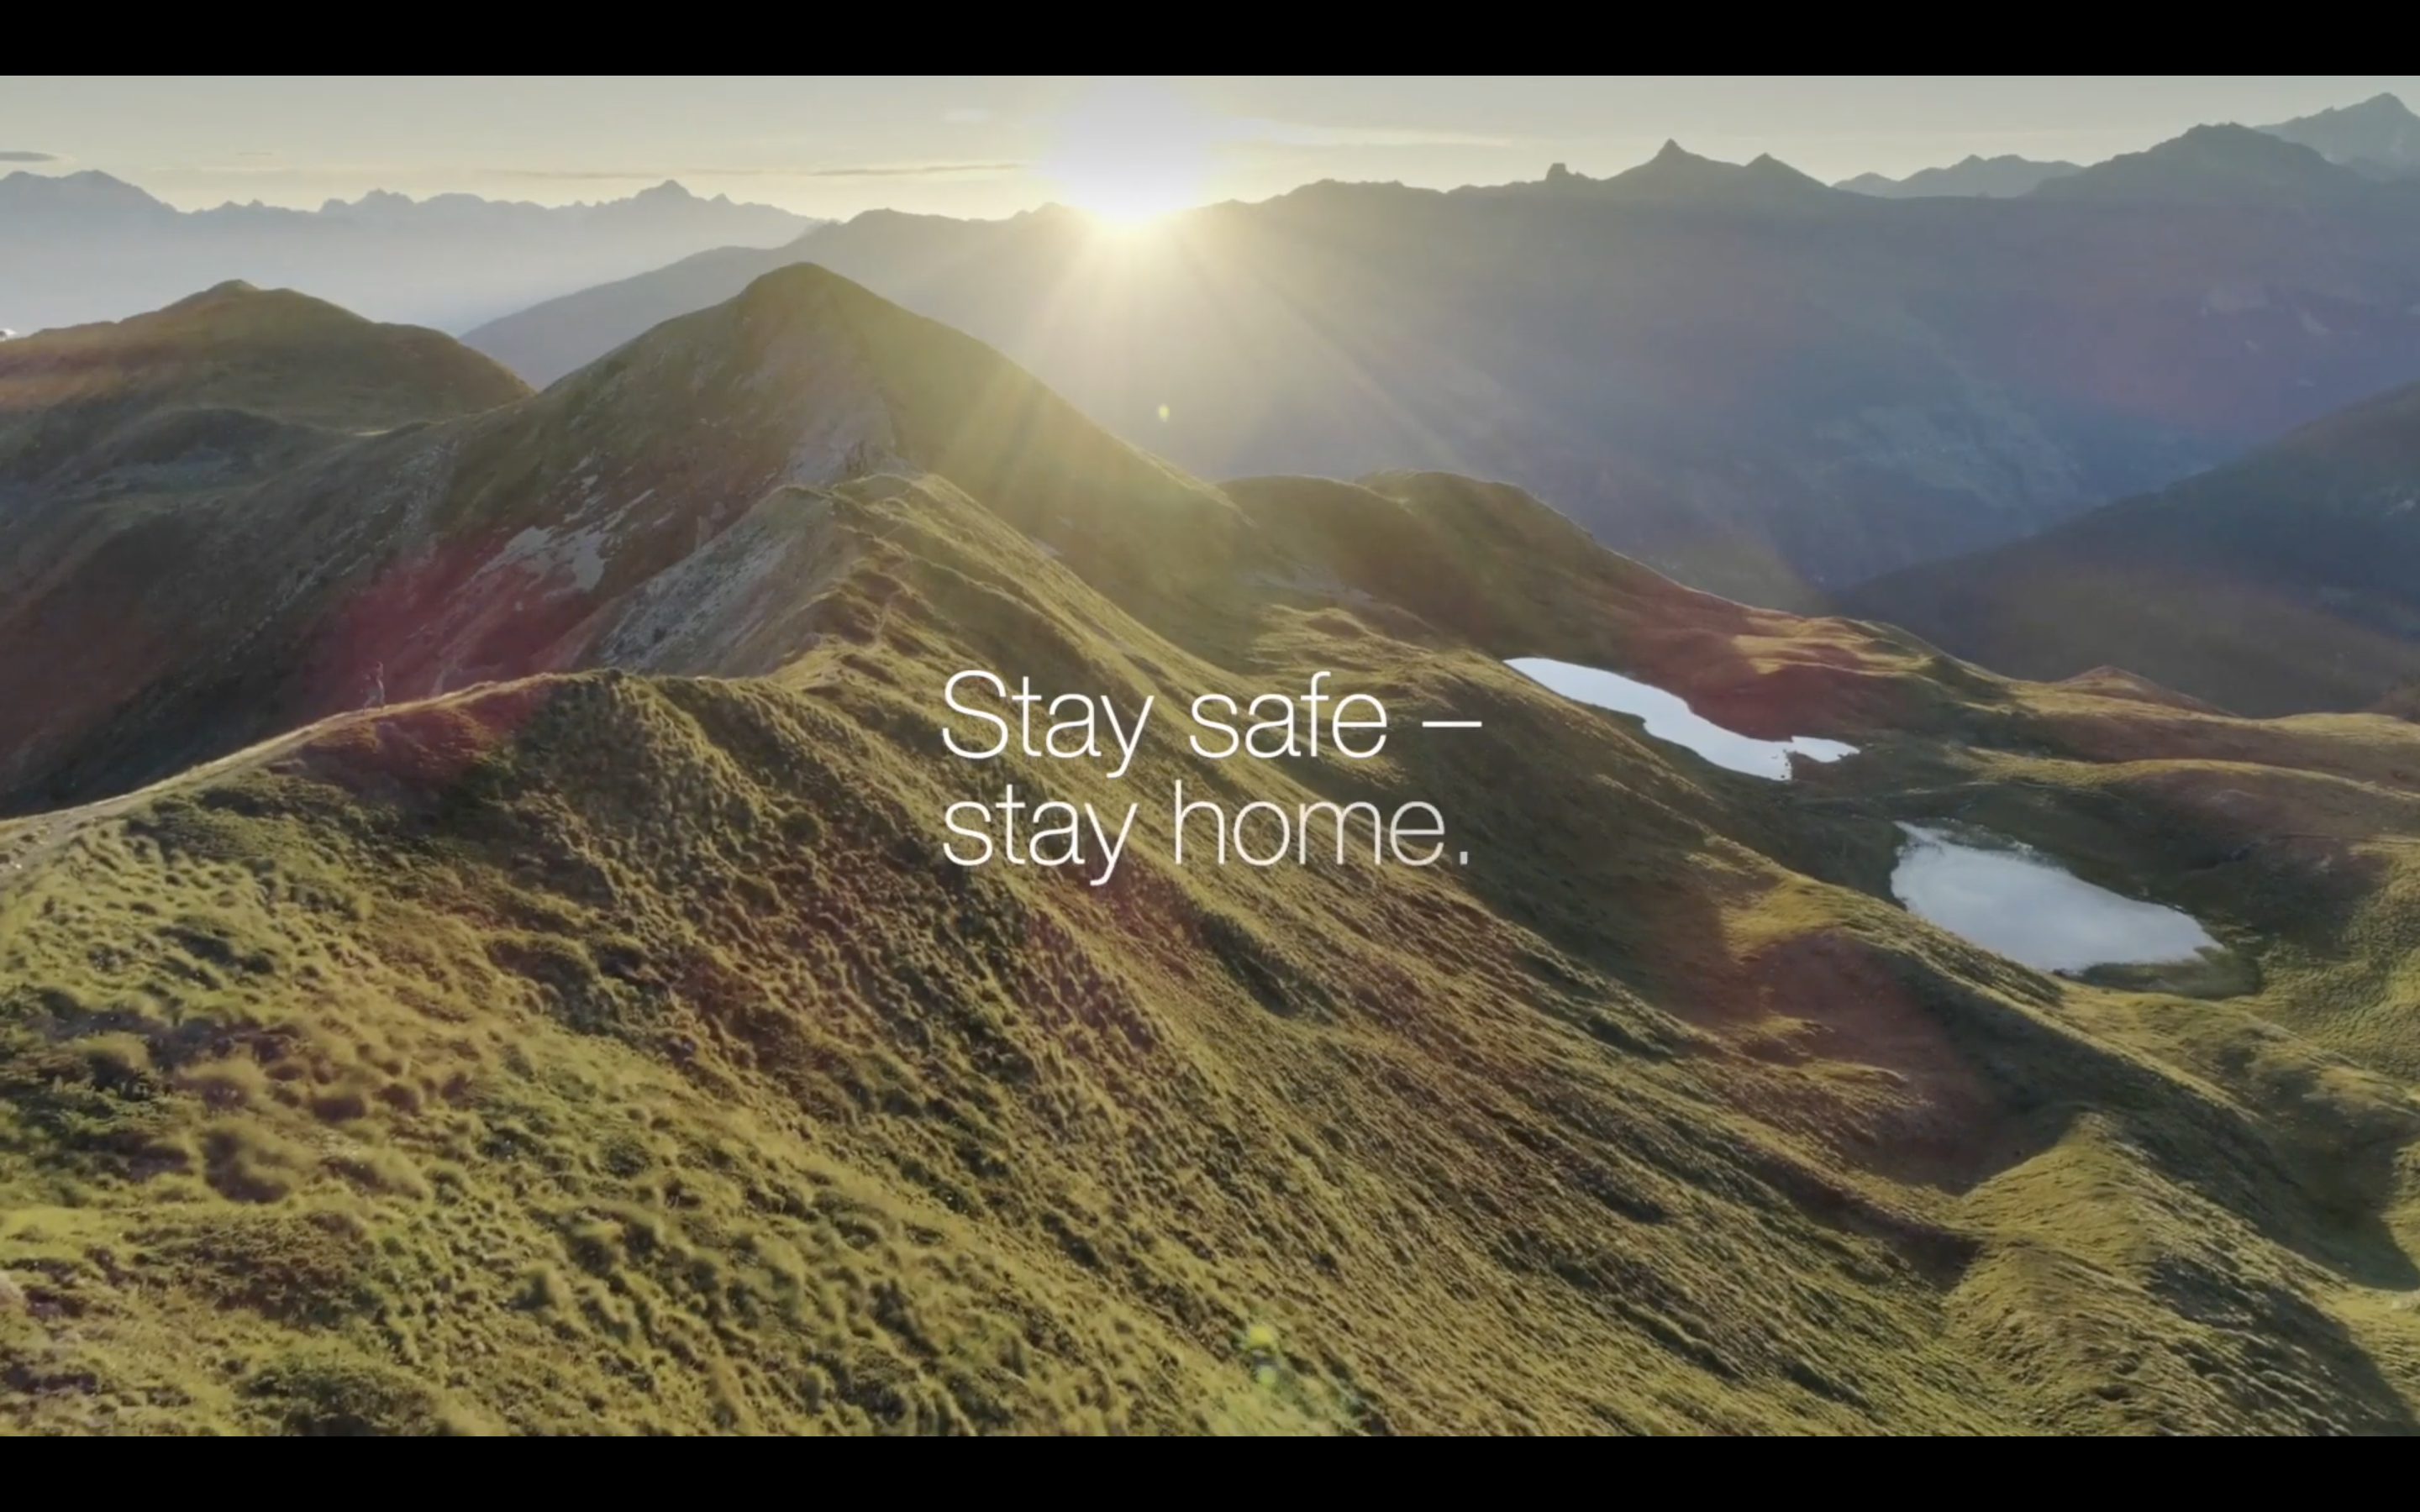 A message from Switzerland's Tourism Board to Tourists: